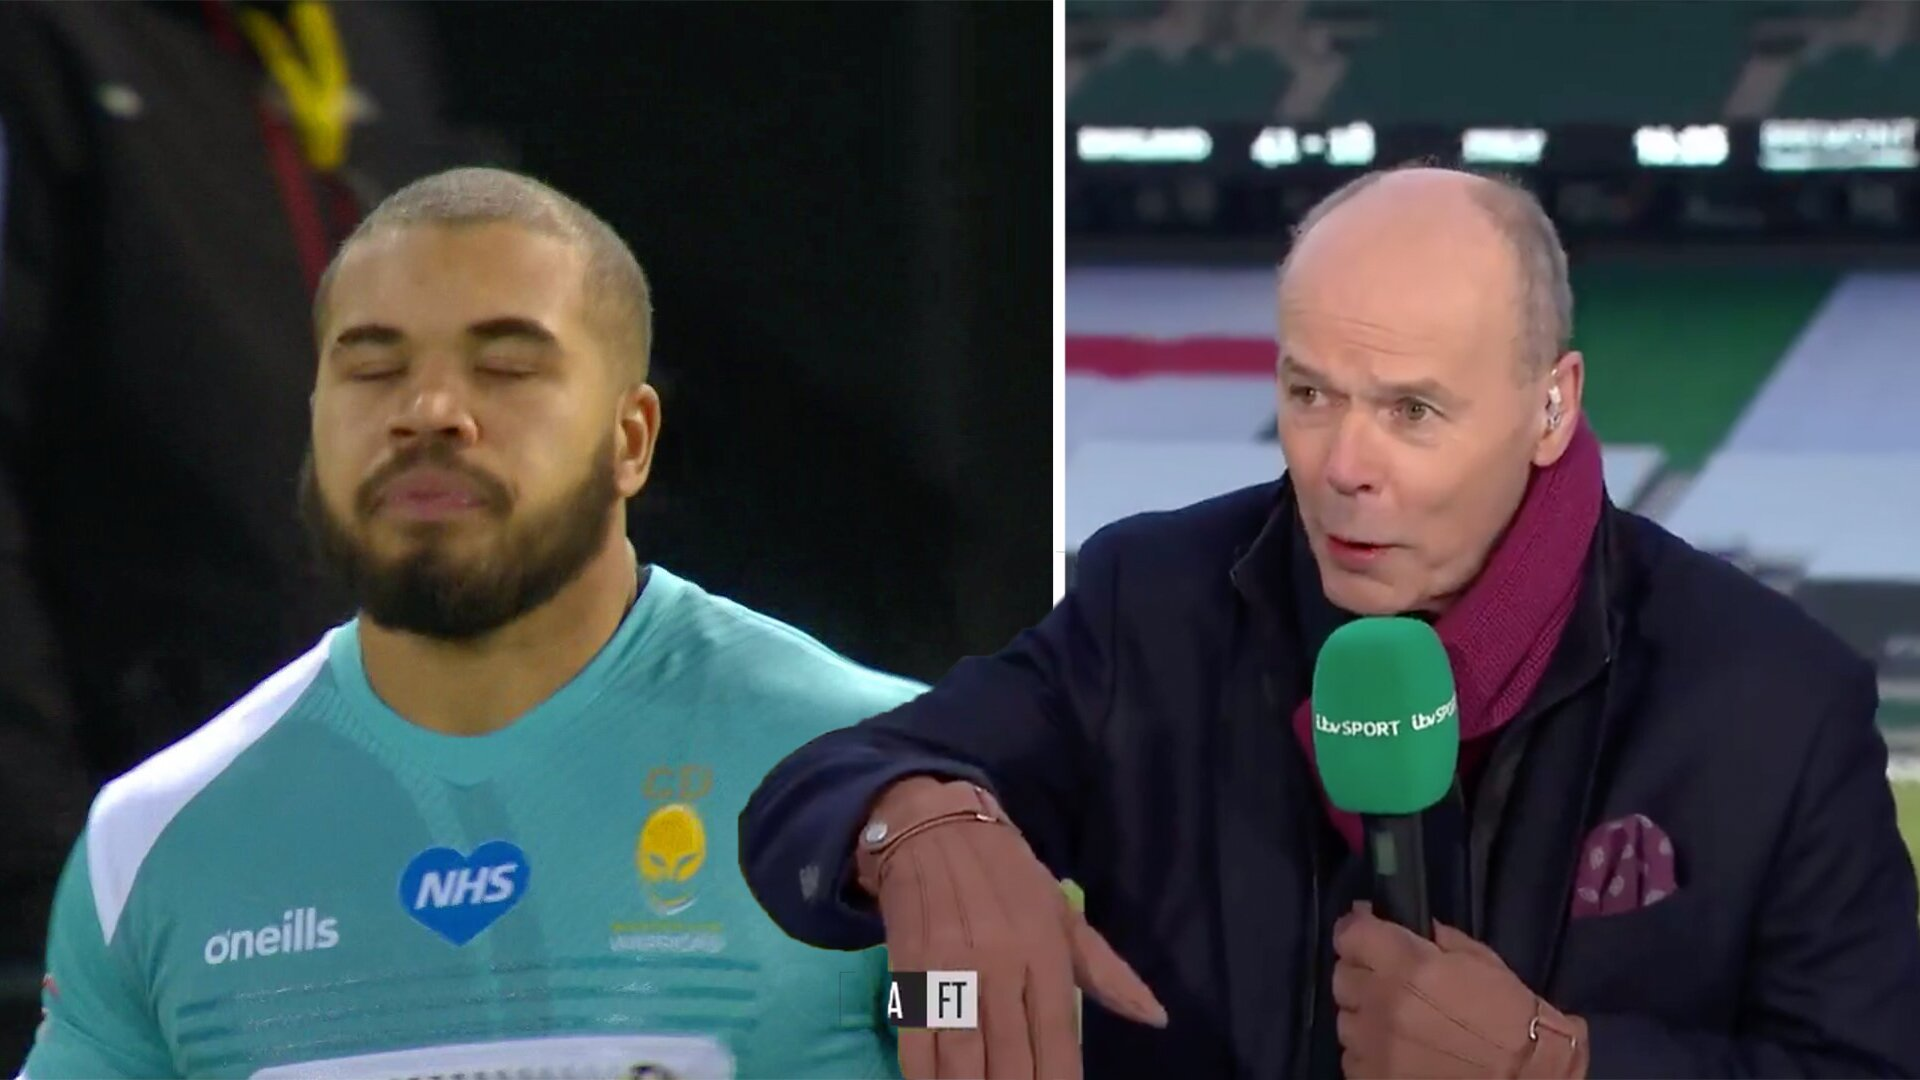 Worcester Warriors have just publicly burned Clive Woodward for his comments about Ollie Lawrence on Live TV